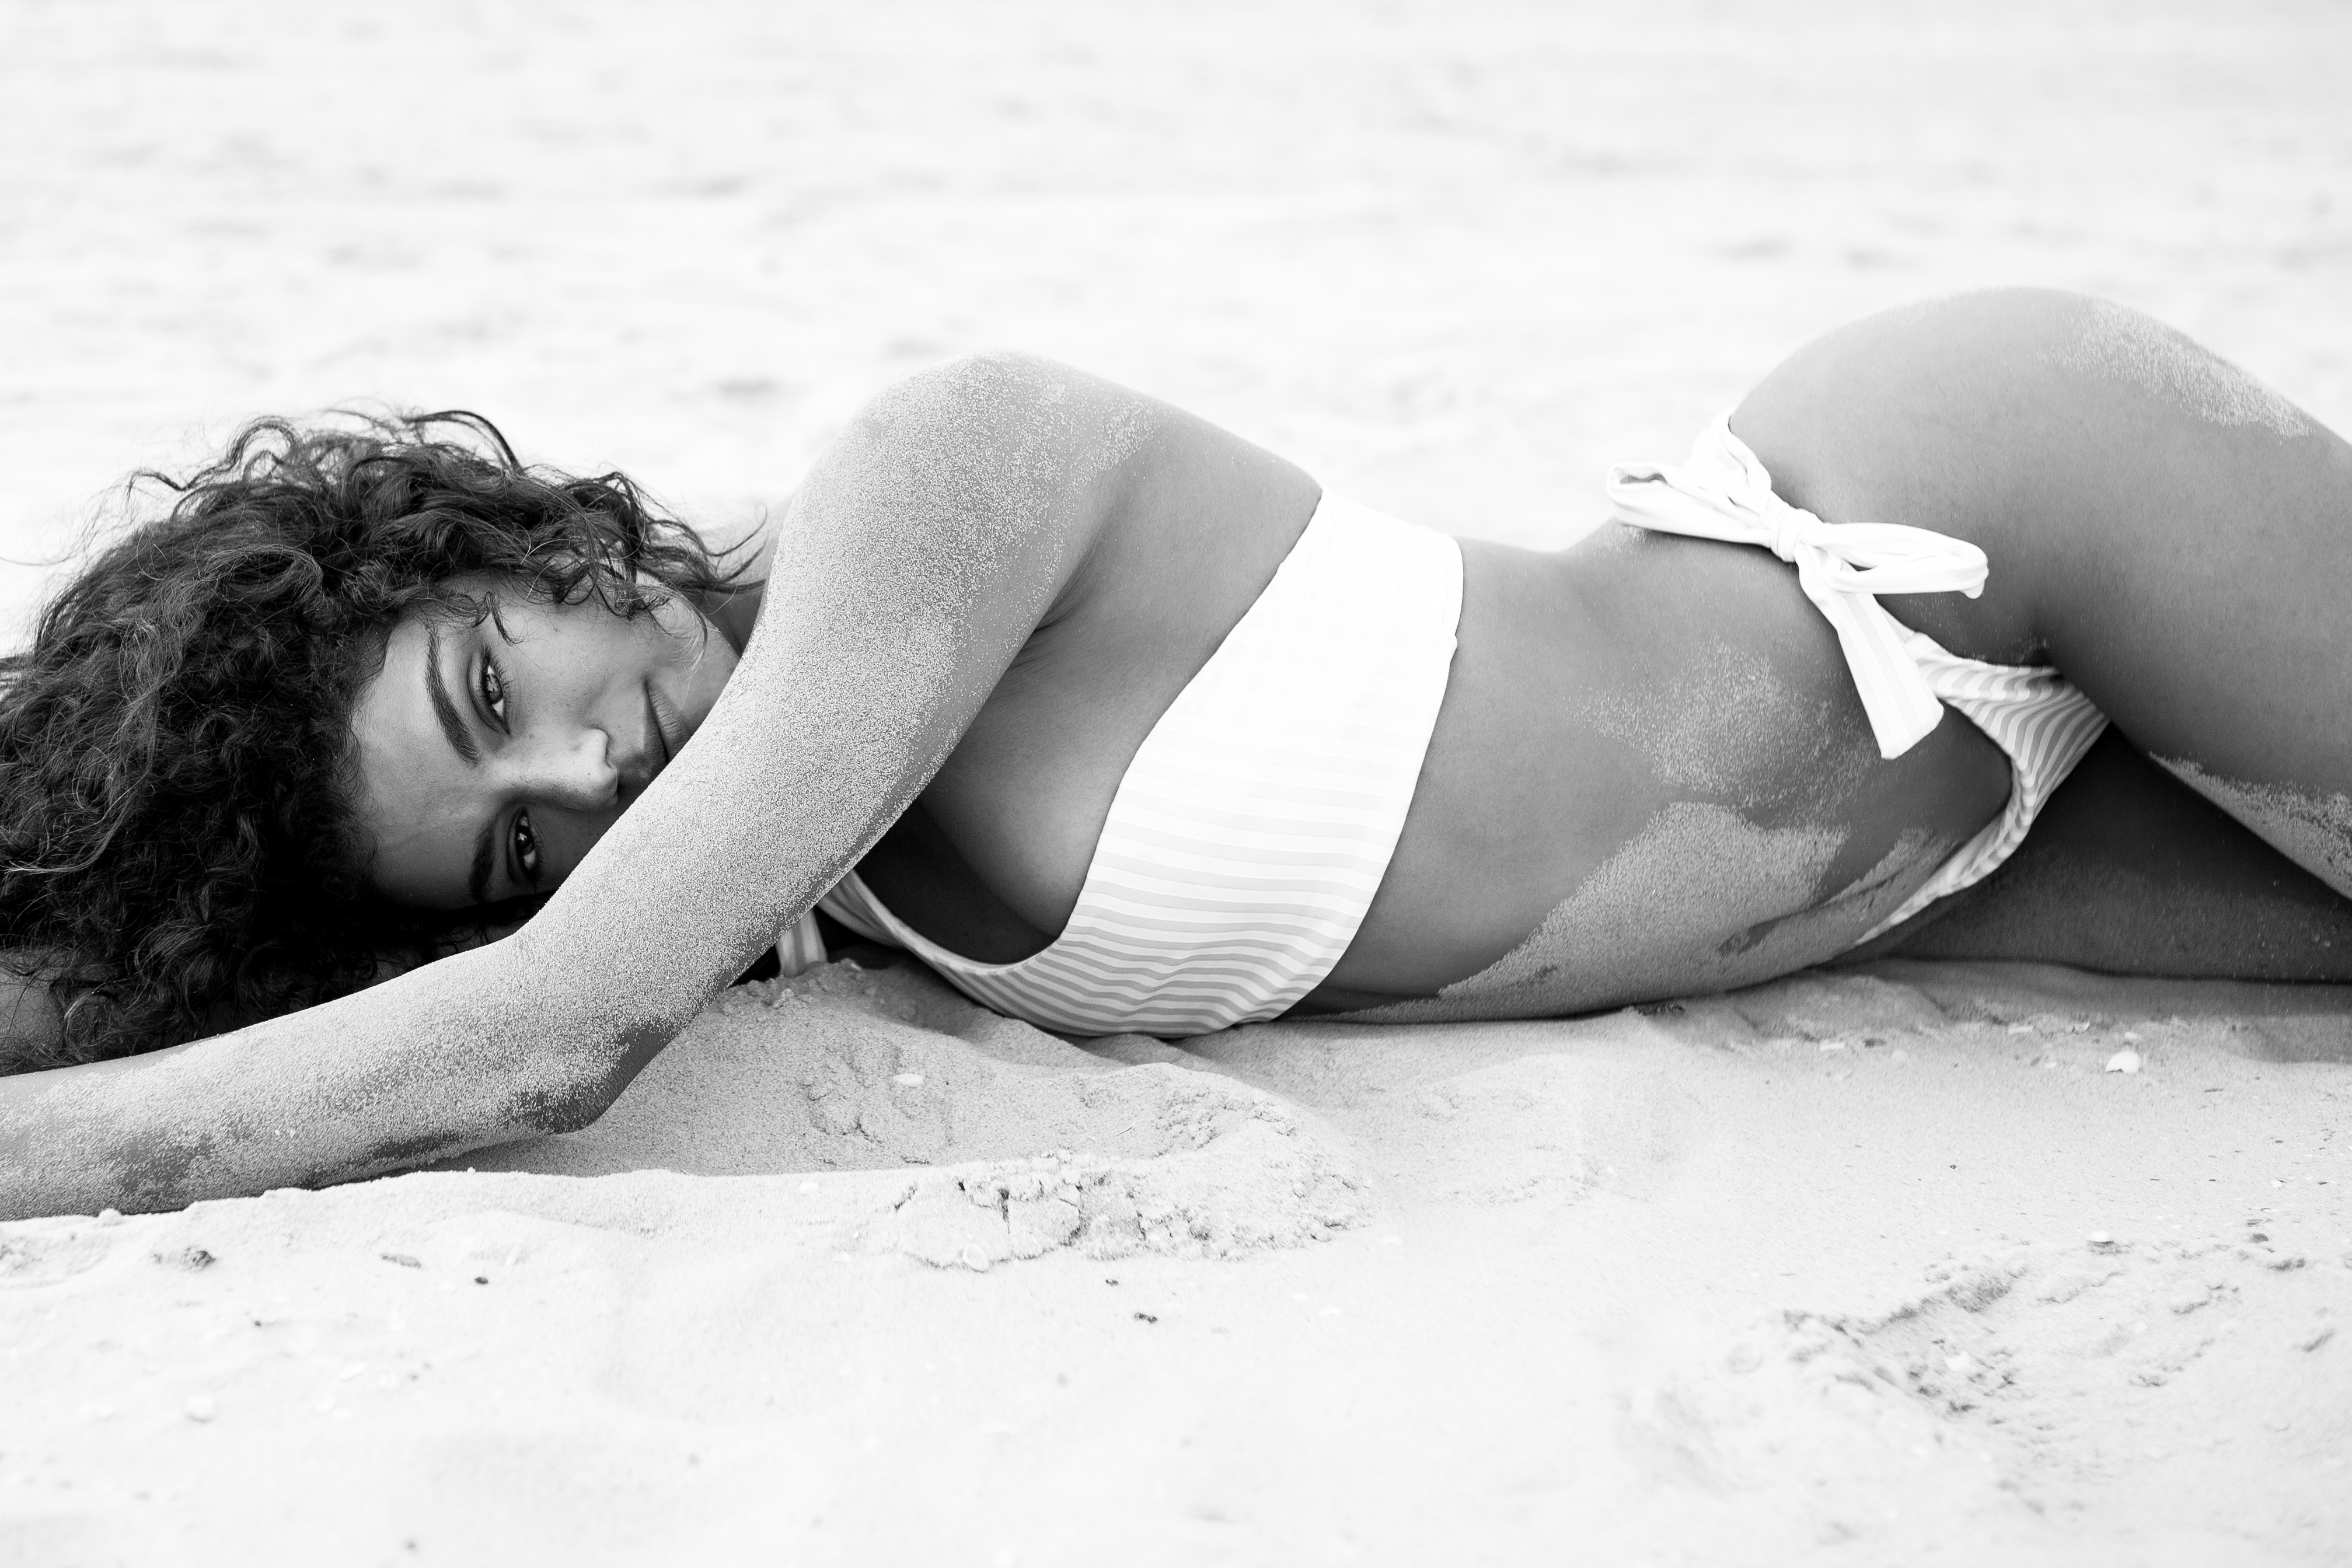 Model lying in sand in bikini photoshoot